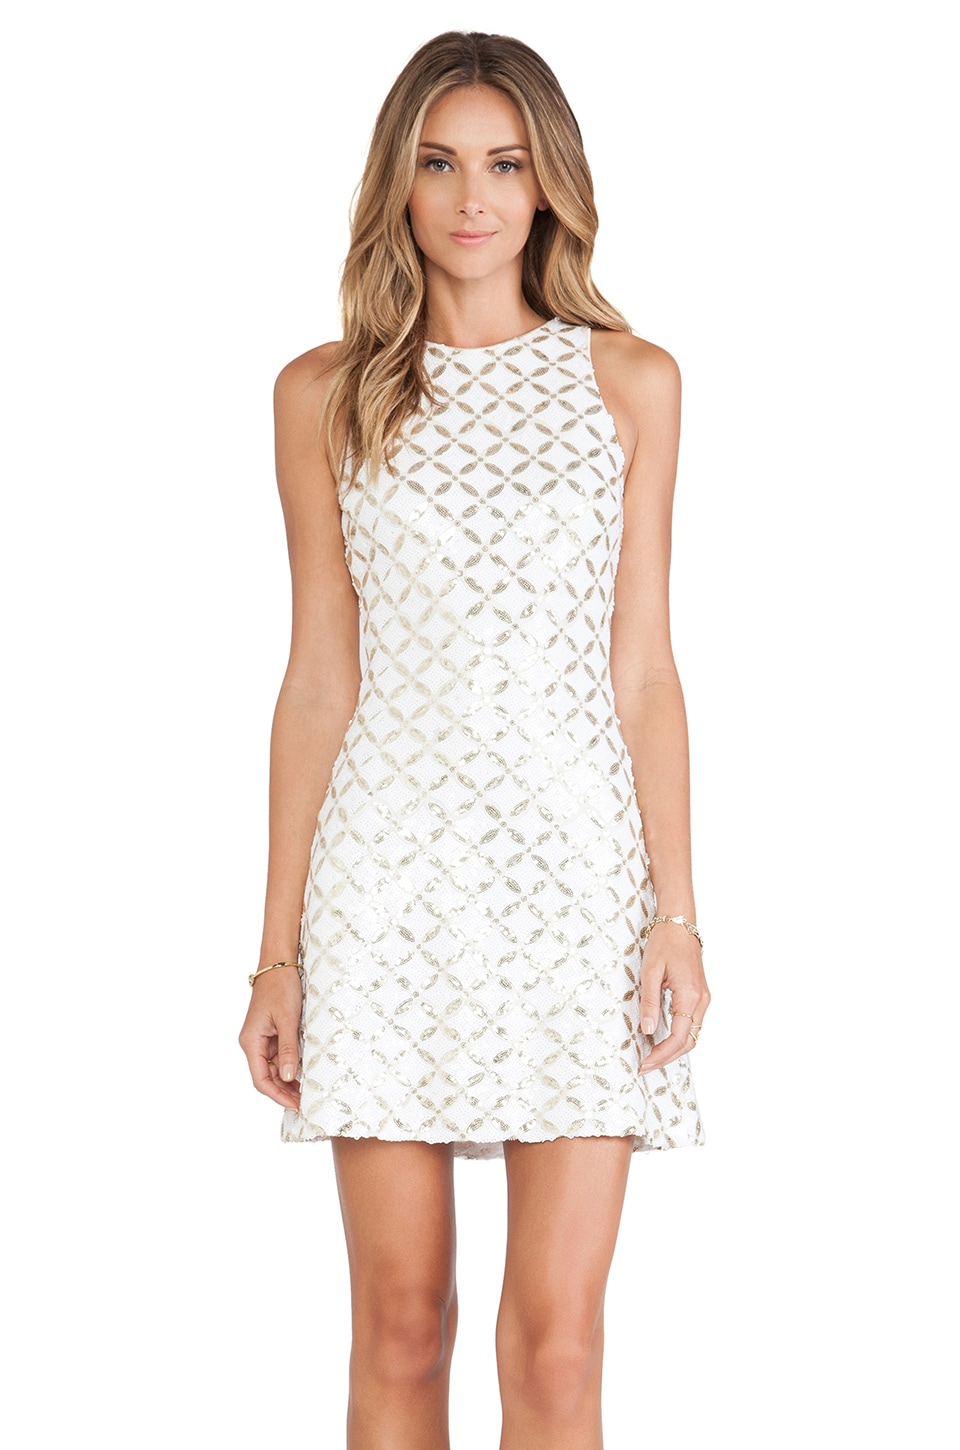 DRESS THE POPULATION Mia Dress in White & Gold Maze